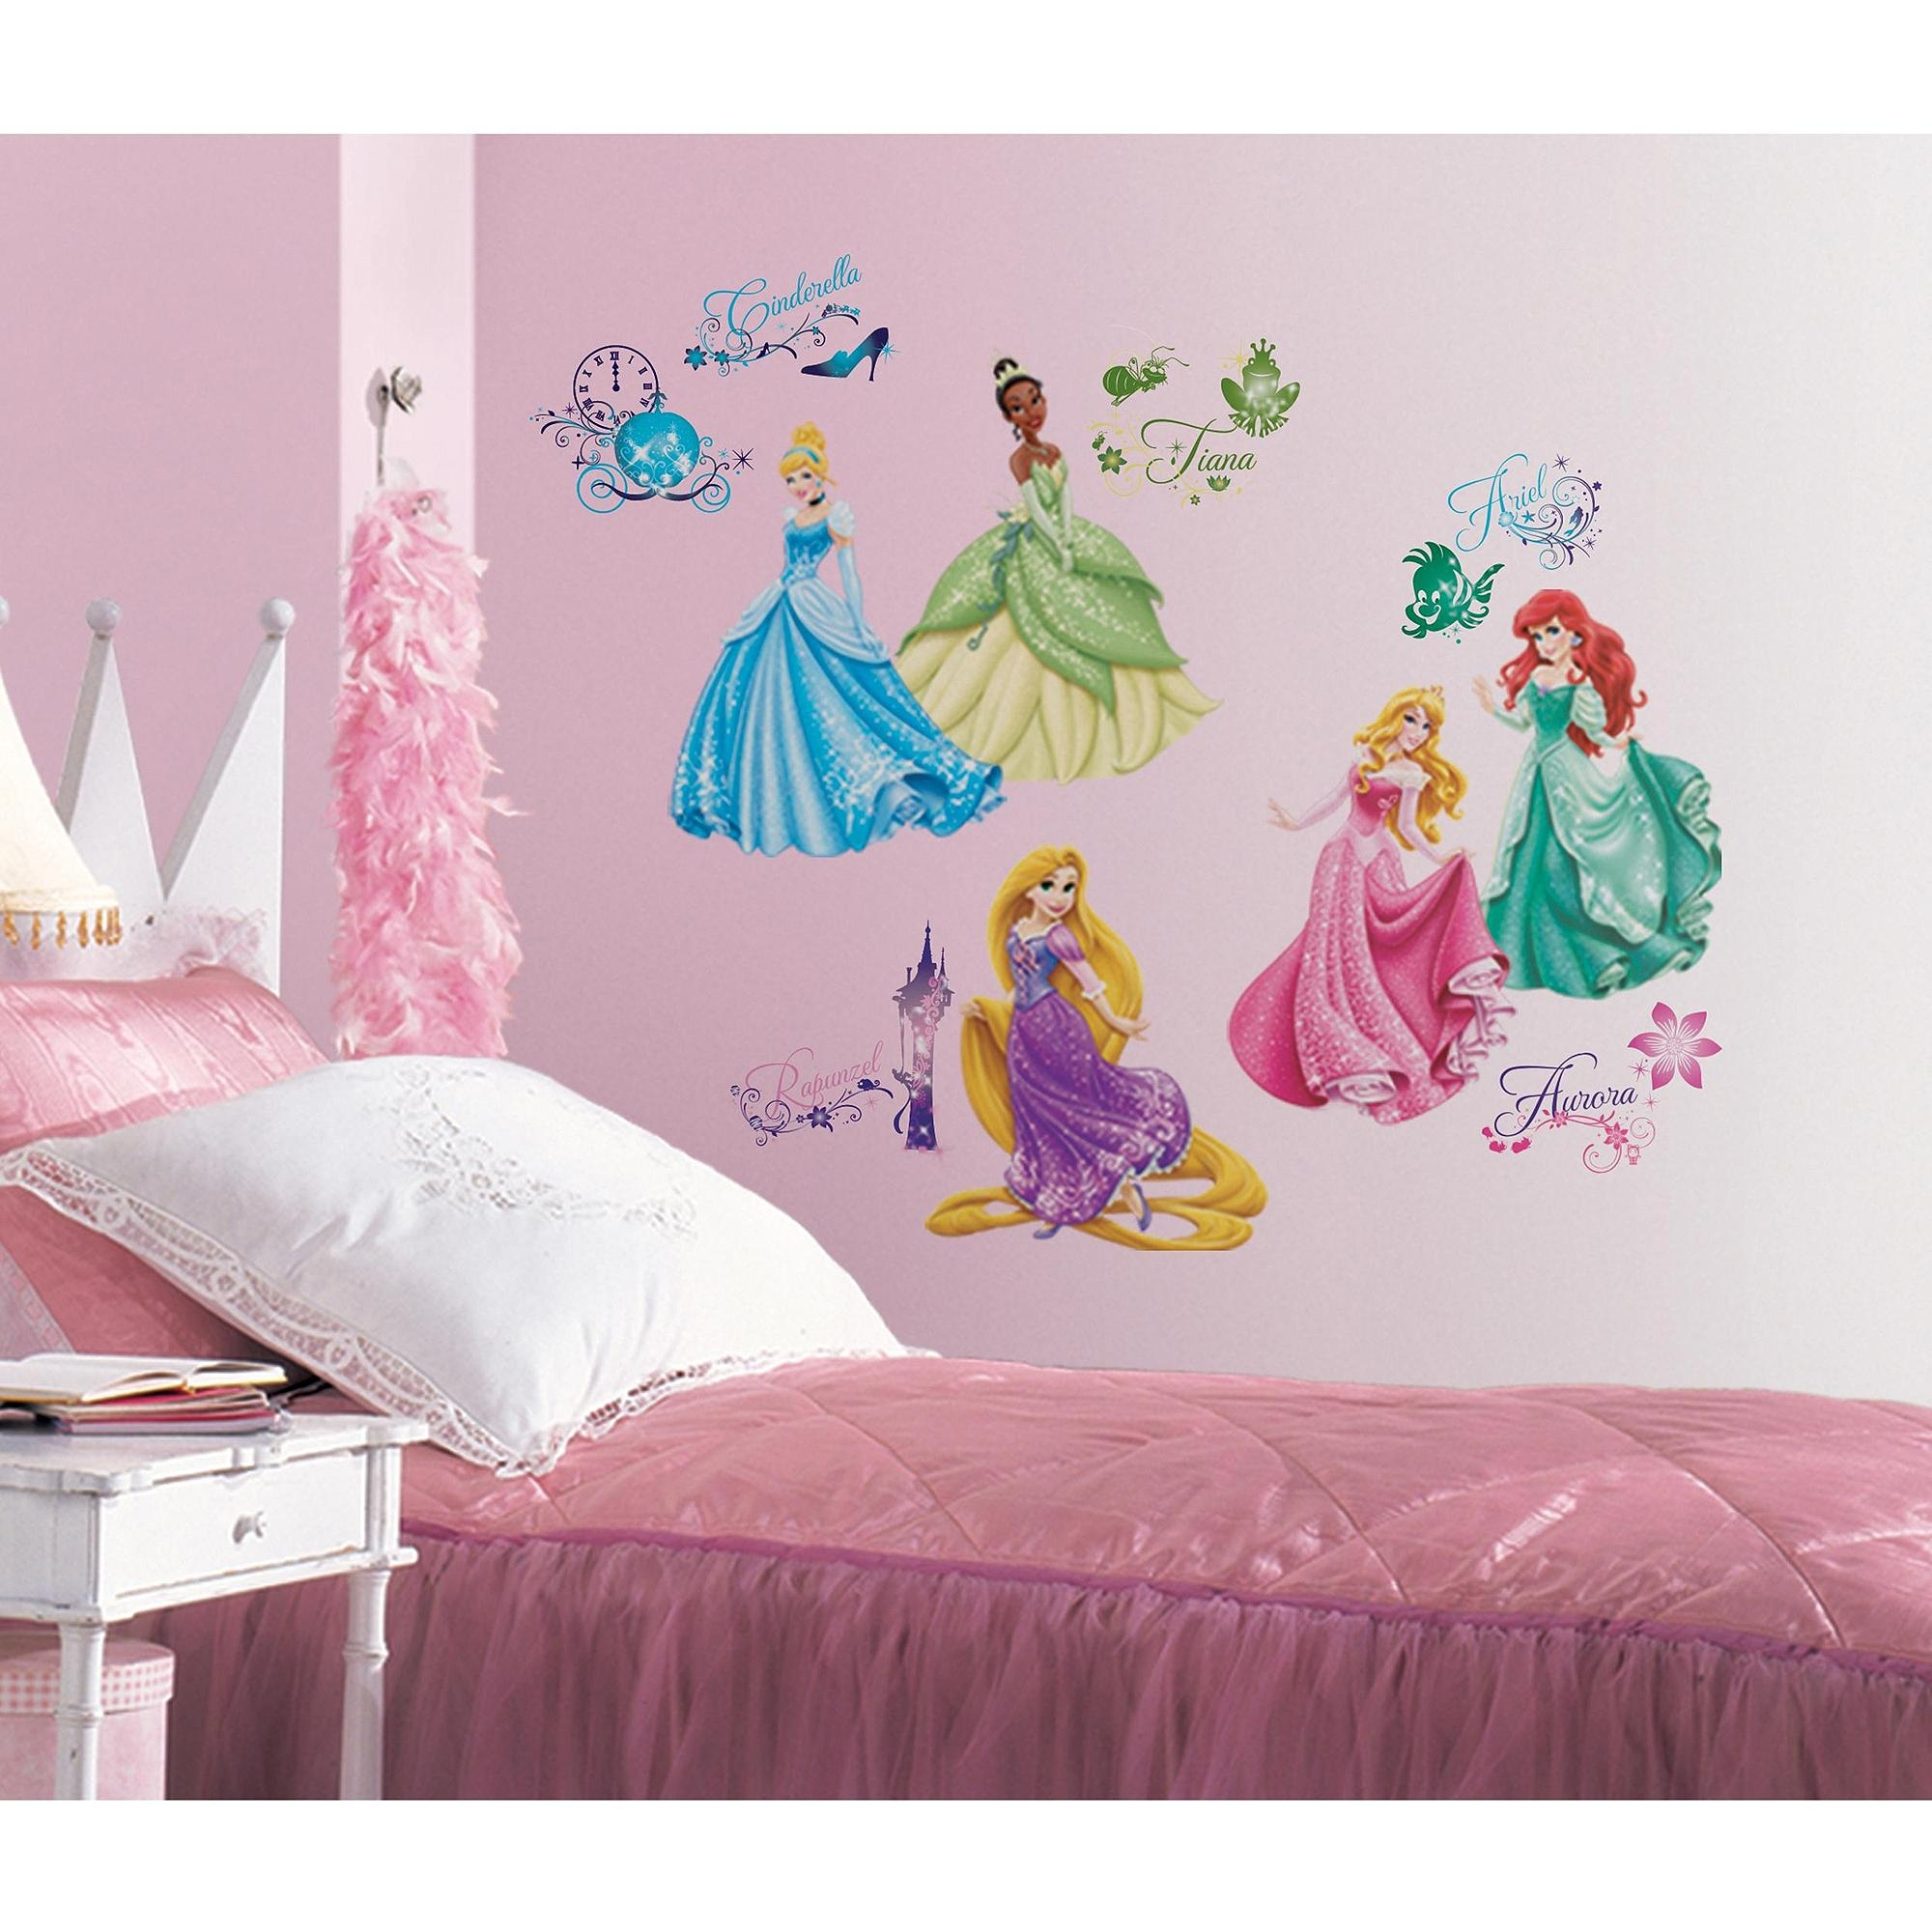 Disney Princess Royal Debut Peel And Stick Wall Decals – Walmart Inside Walmart Wall Stickers (Image 6 of 20)